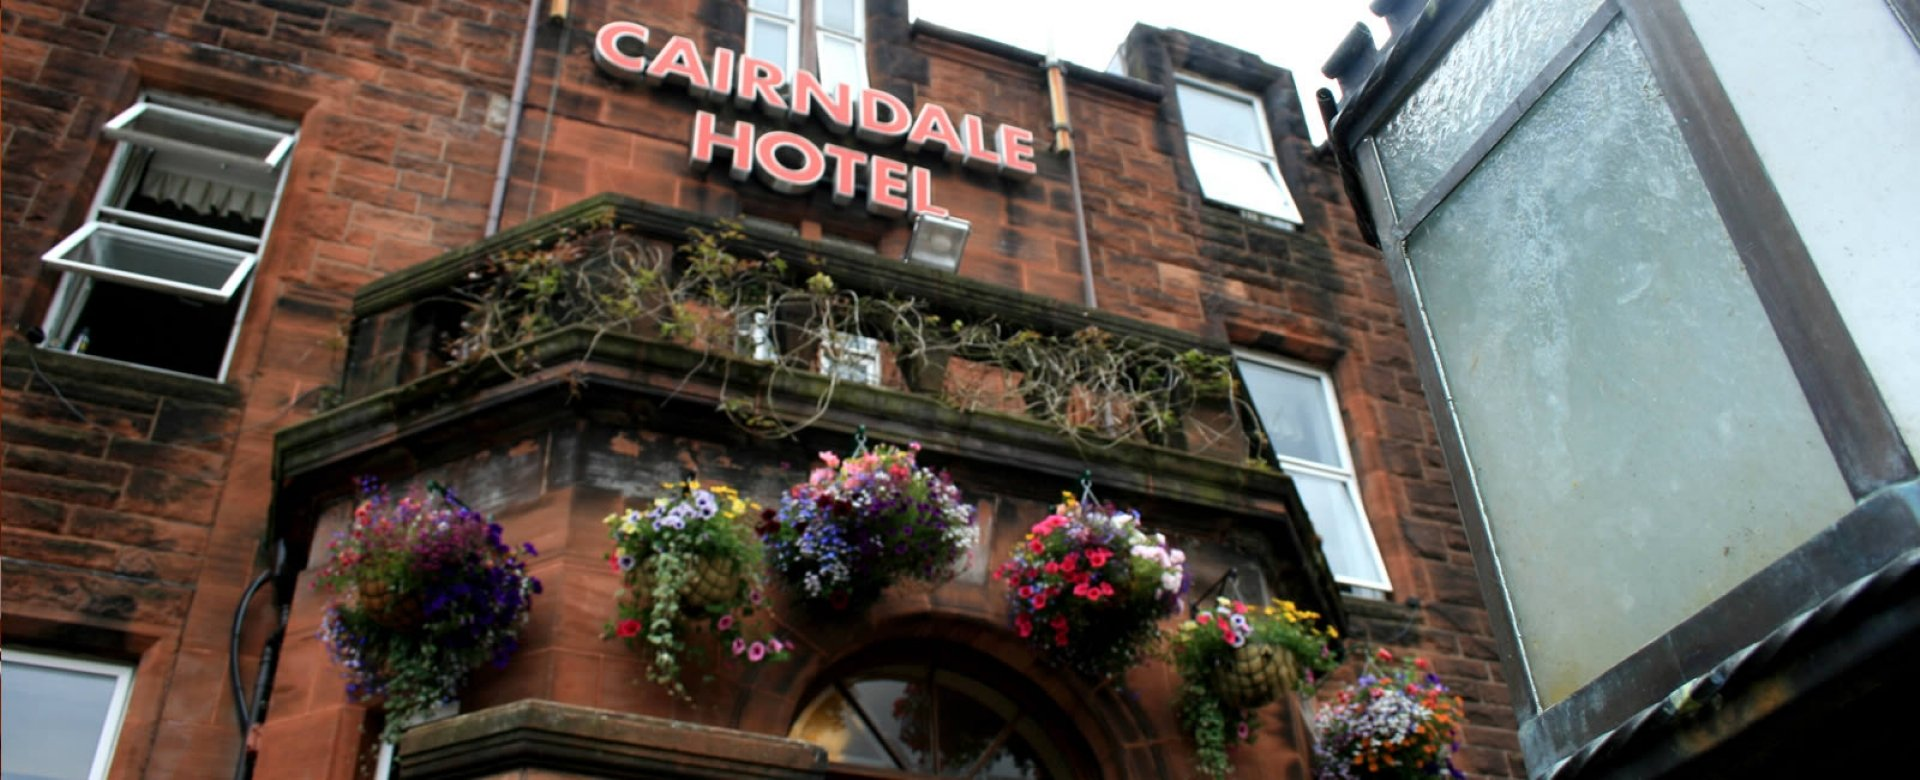 The Cairndale Hotel in Dumfries